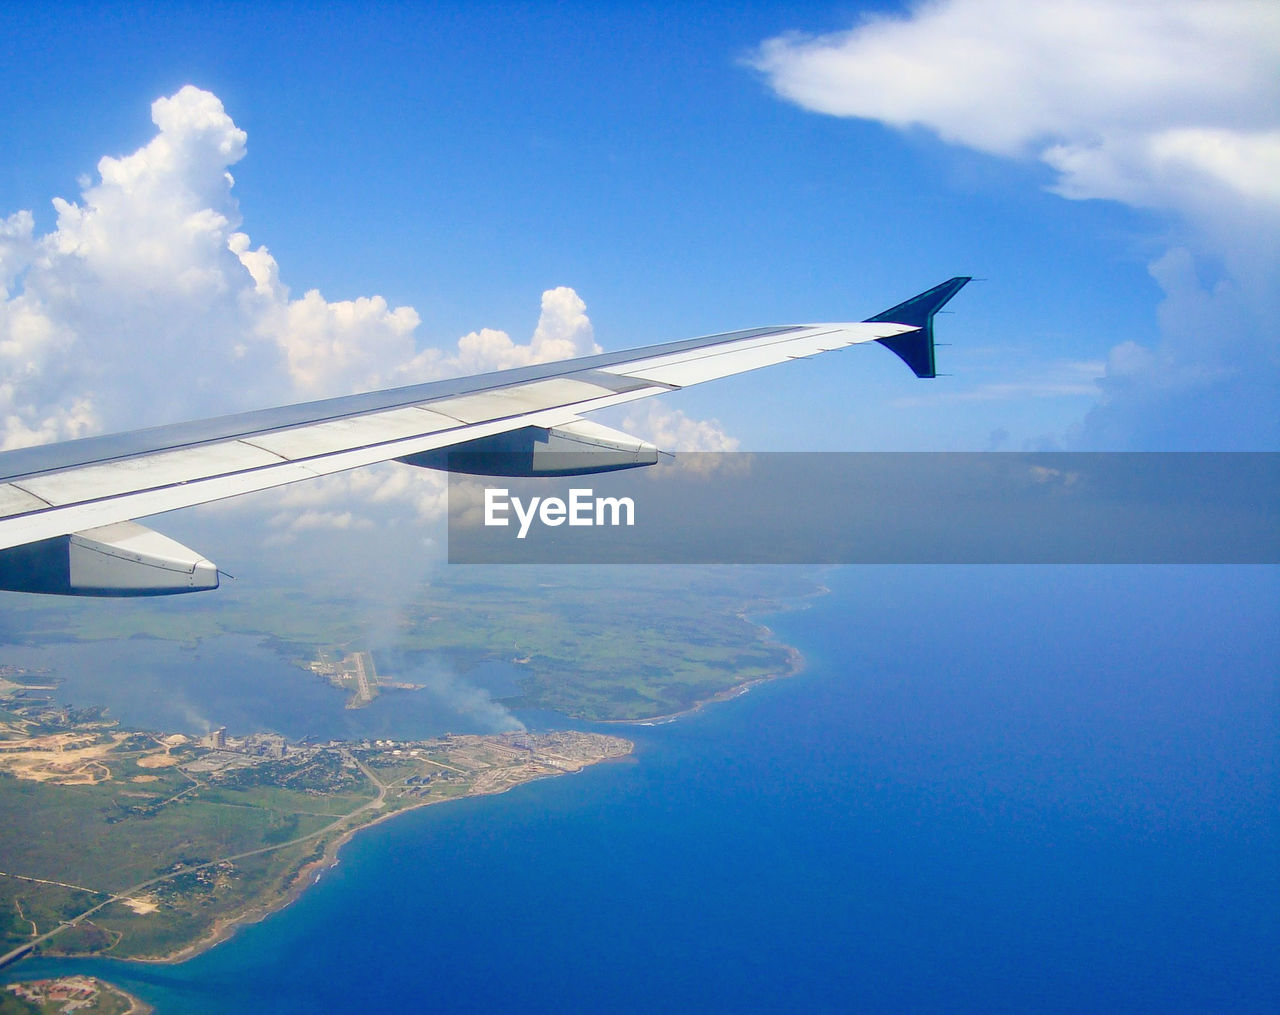 airplane, air vehicle, sky, cloud - sky, transportation, flying, aircraft wing, mode of transportation, nature, no people, water, beauty in nature, day, travel, scenics - nature, mid-air, motion, aerial view, blue, on the move, outdoors, plane